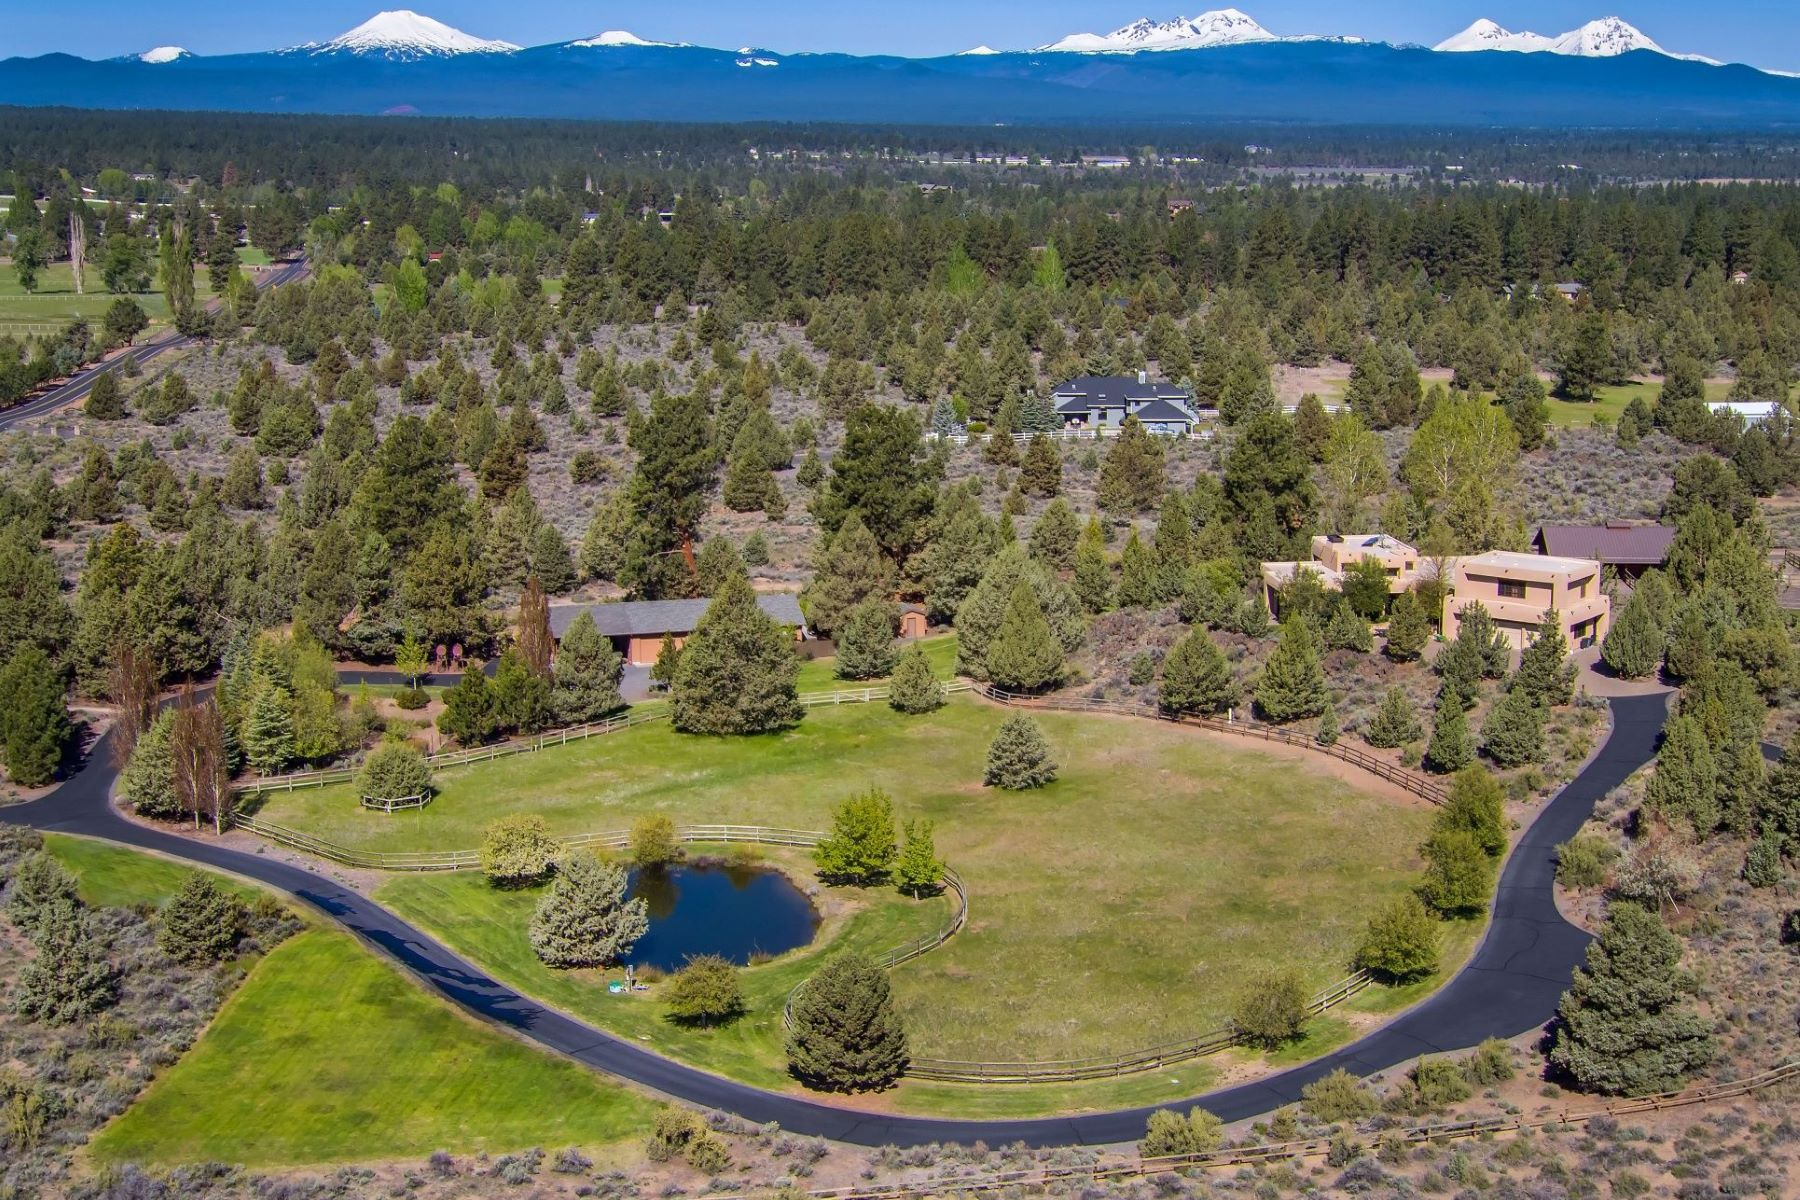 Other Residential Homes for Active at 60336 Arnold Market Road Bend, OR 97702 60336 Arnold Market Road Bend, Oregon 97702 United States